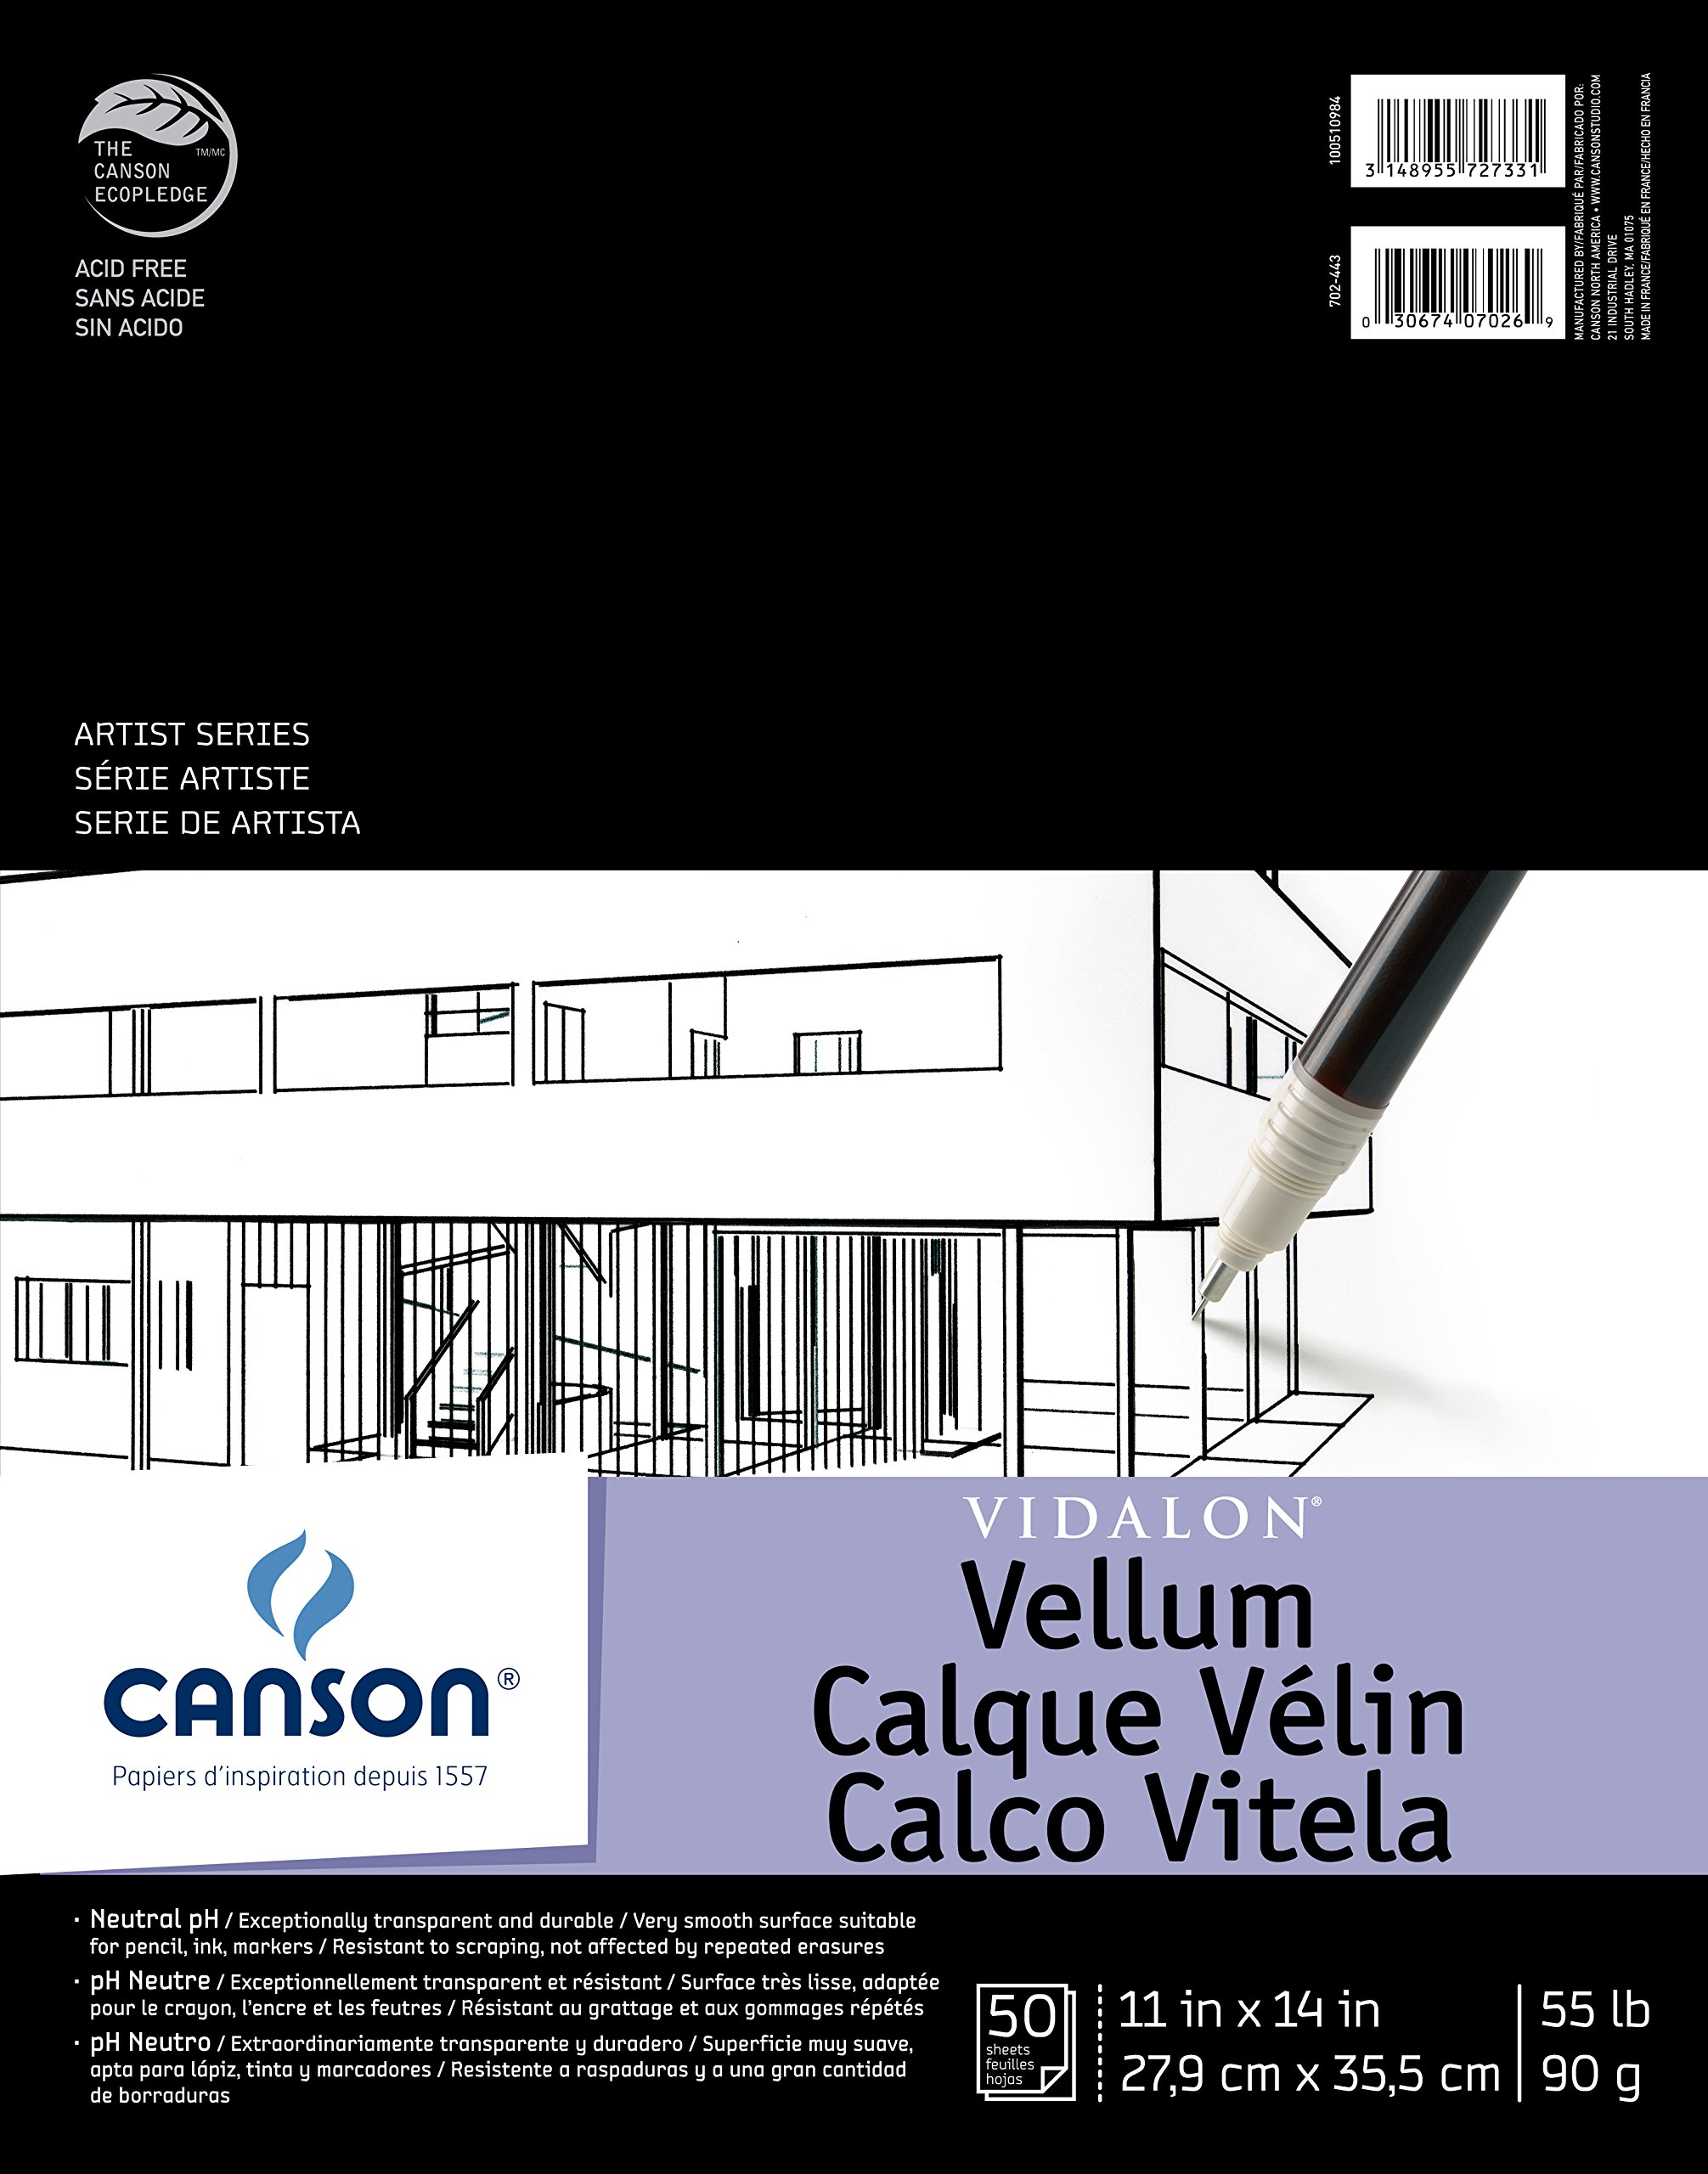 Canson Artist Series Vidalon Vellum Paper Pad, Translucent and Acid Free for Pencil, Ink and Markers, Fold Over, 55 Pound, 11 x 14 Inch, 50 Sheets by Canson